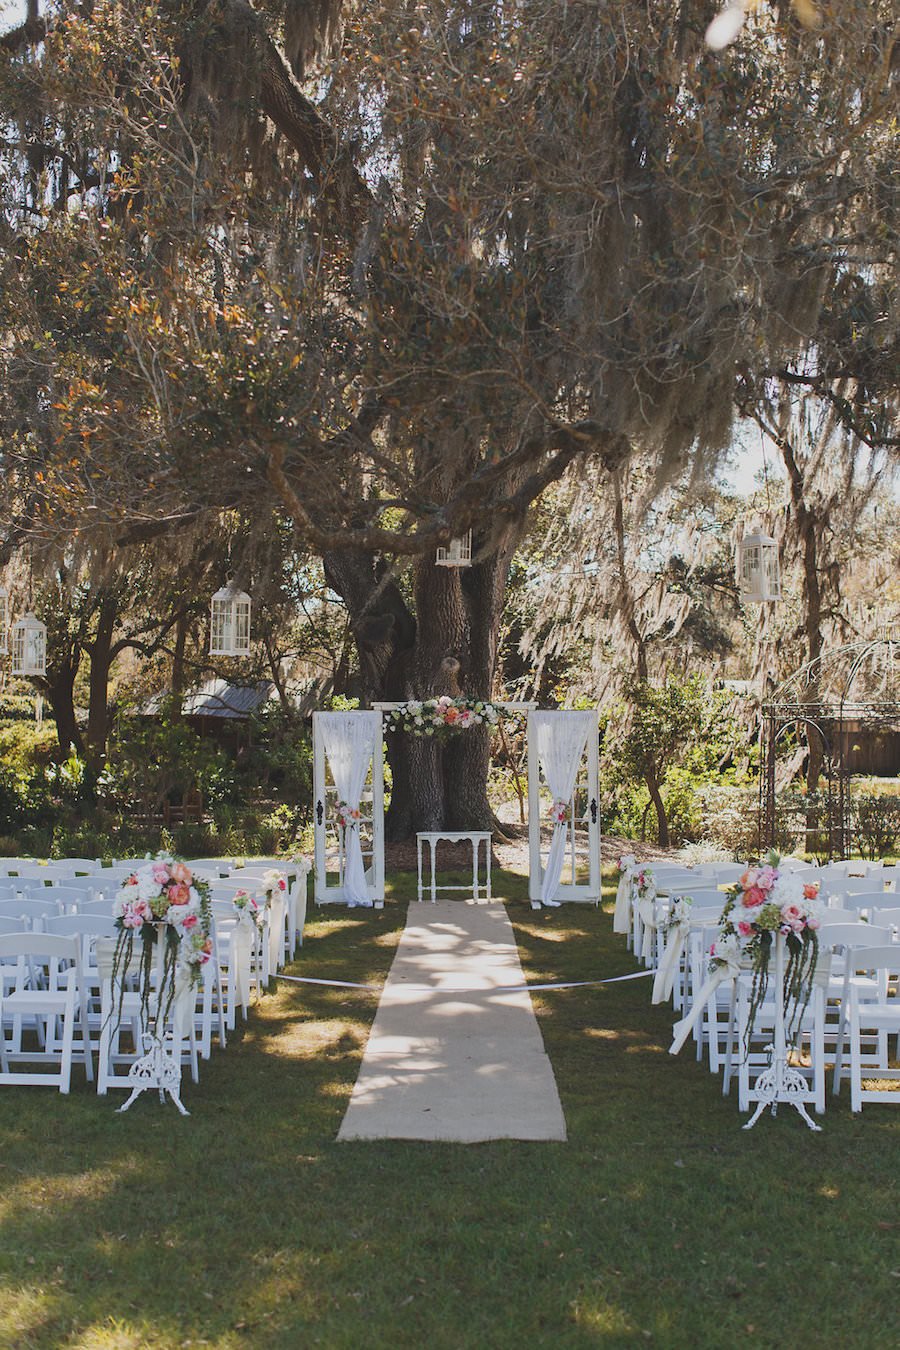 Rustic Outdoor Wedding Ceremony Inspiration | Vintage Door Pane with Draping and White Garden Chairs with Blush Pink and Salmon Flowers | Rustic Tampa Wedding Venue Cross Creek Ranch